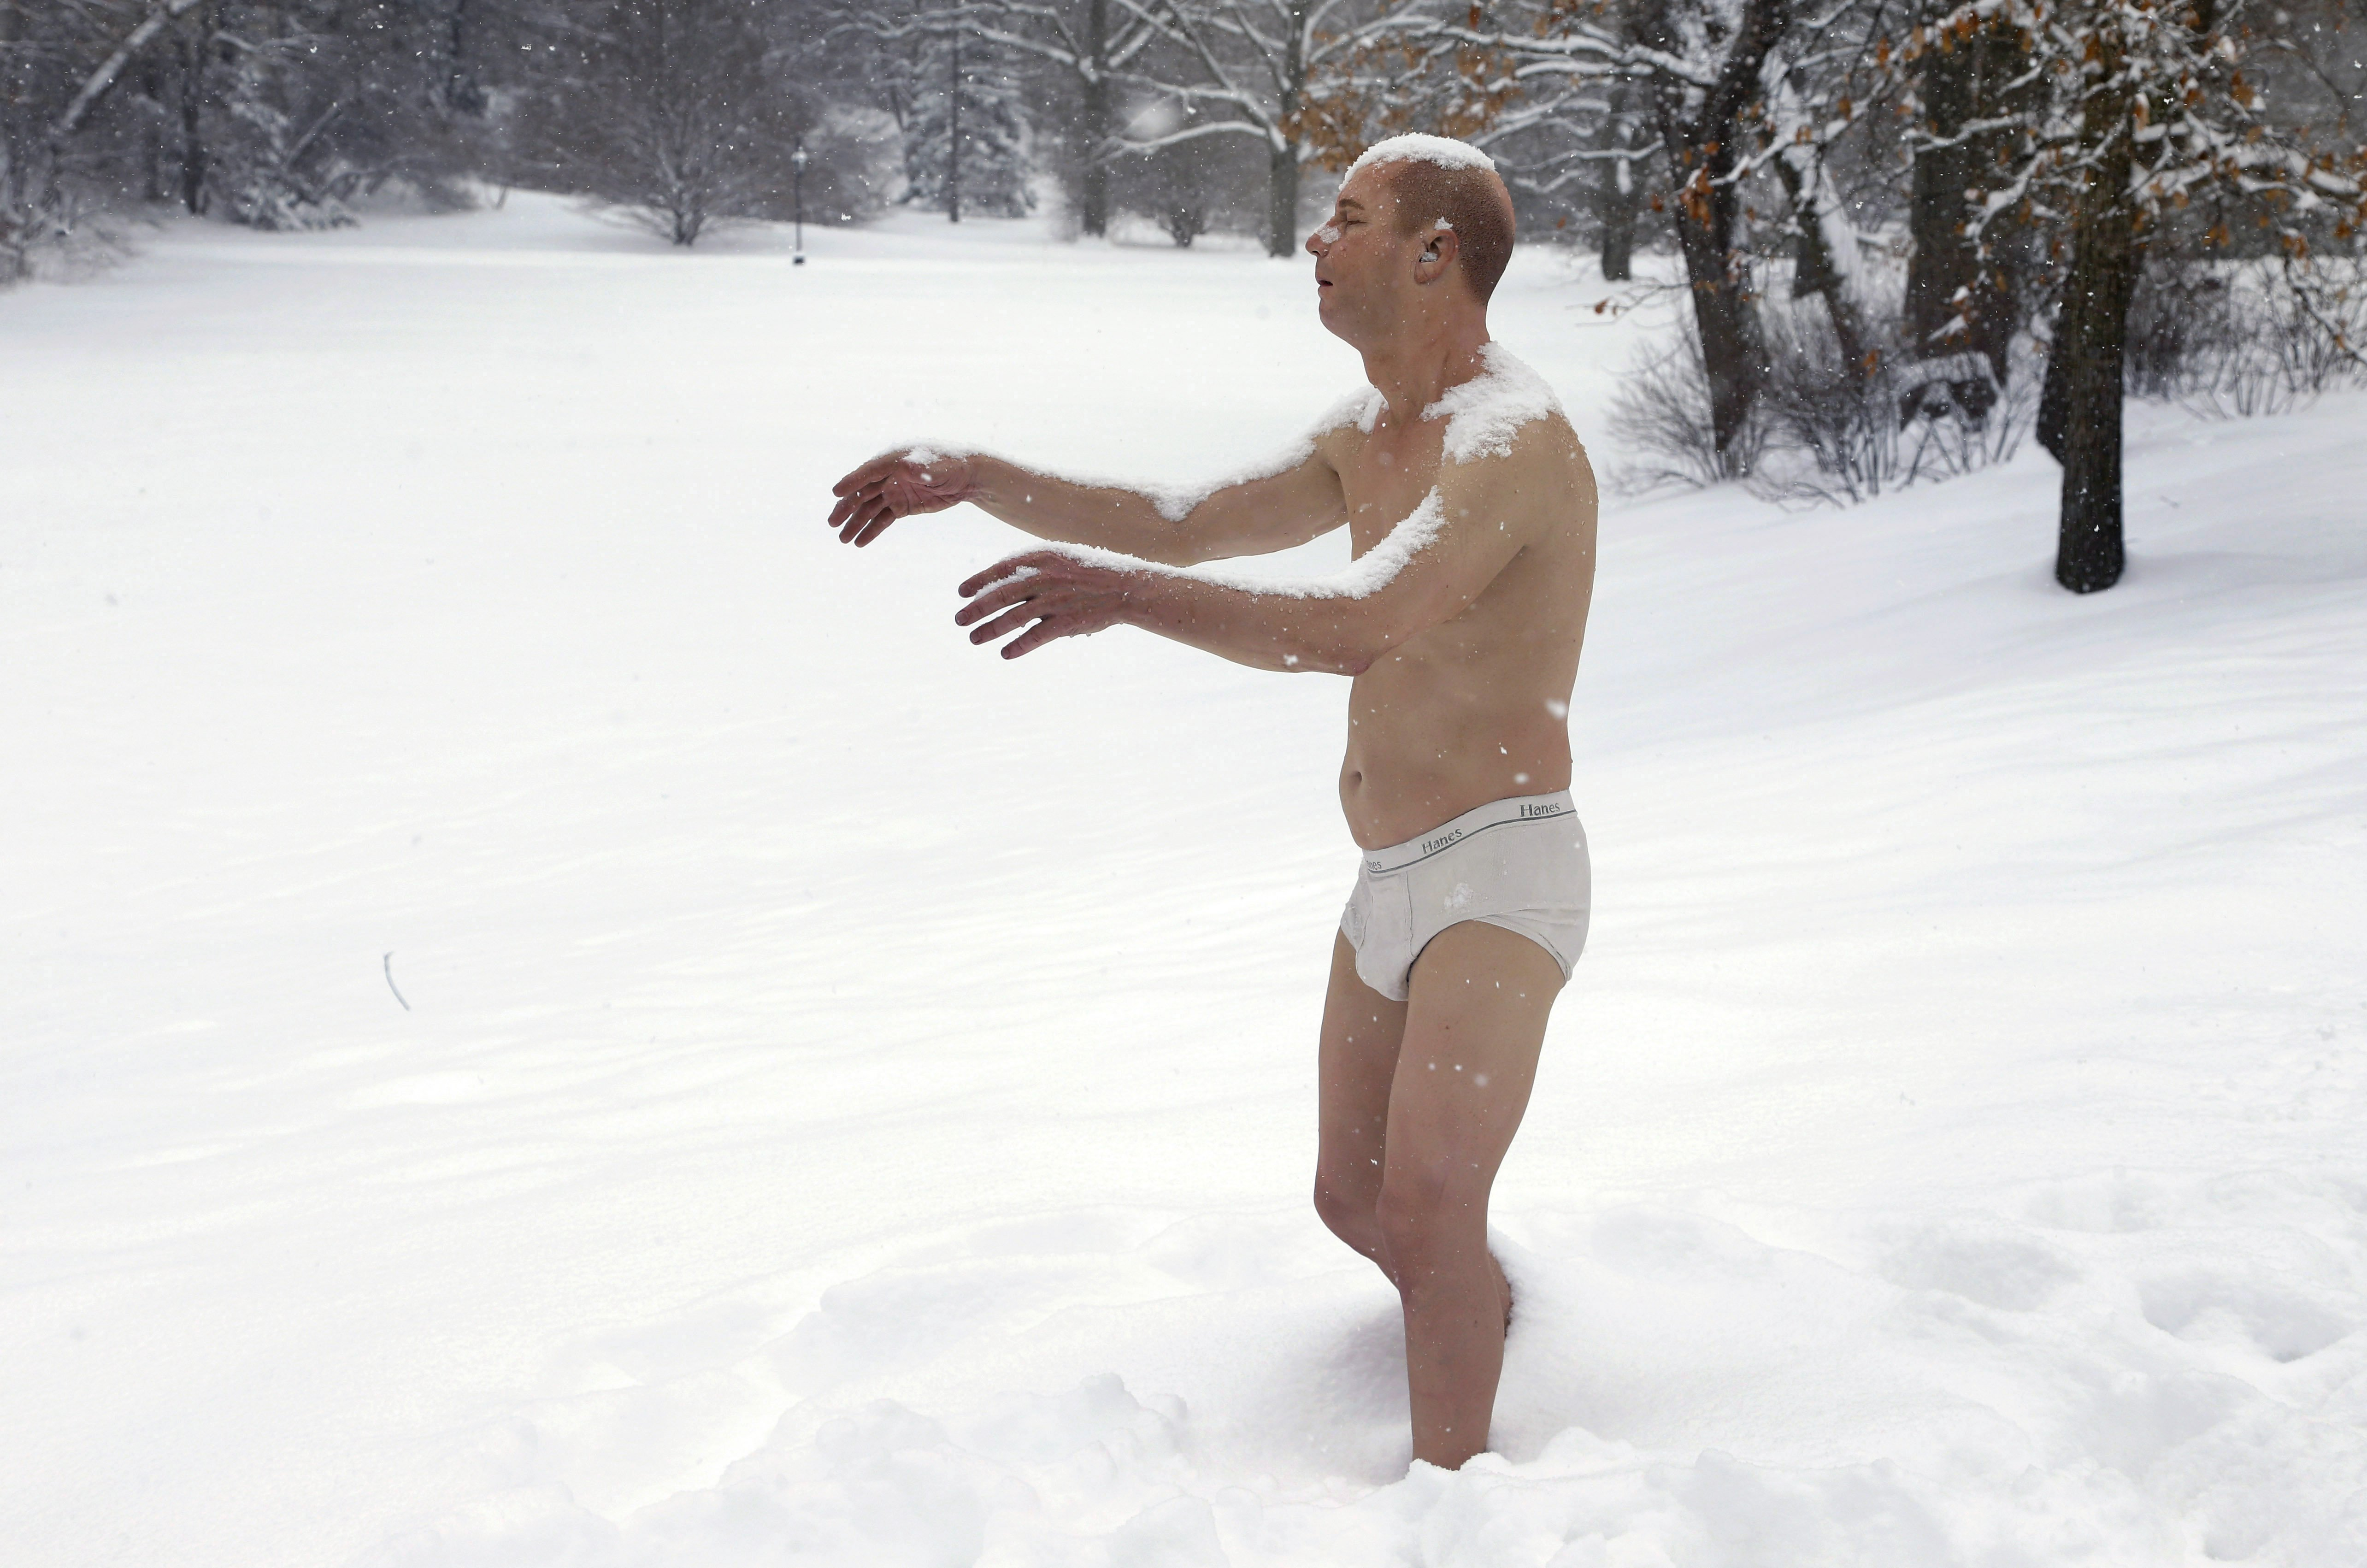 A statue of a man sleepwalking in his underpants is surrounded by snow on the campus of Wellesley College, in Wellesley, Mass., Feb. 5, 2014. The sculpture entitled  Sleepwalker  is part of an exhibit by sculptor Tony Matelli at the college's Davis Museum.